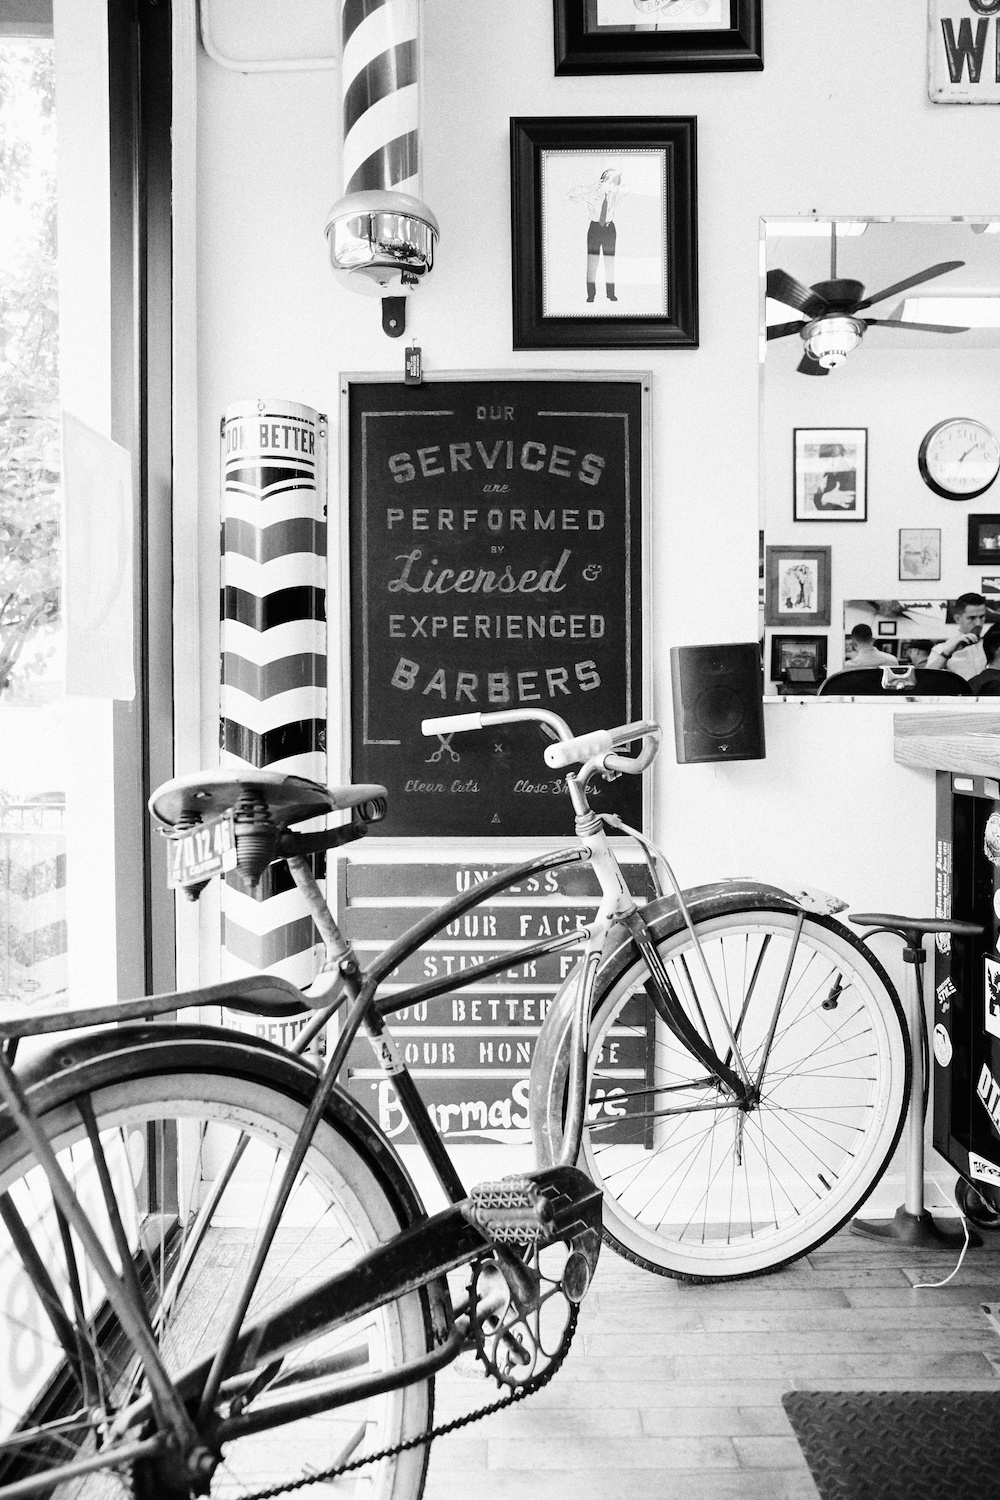 Bike-in-barbershop-services-sign.jpg